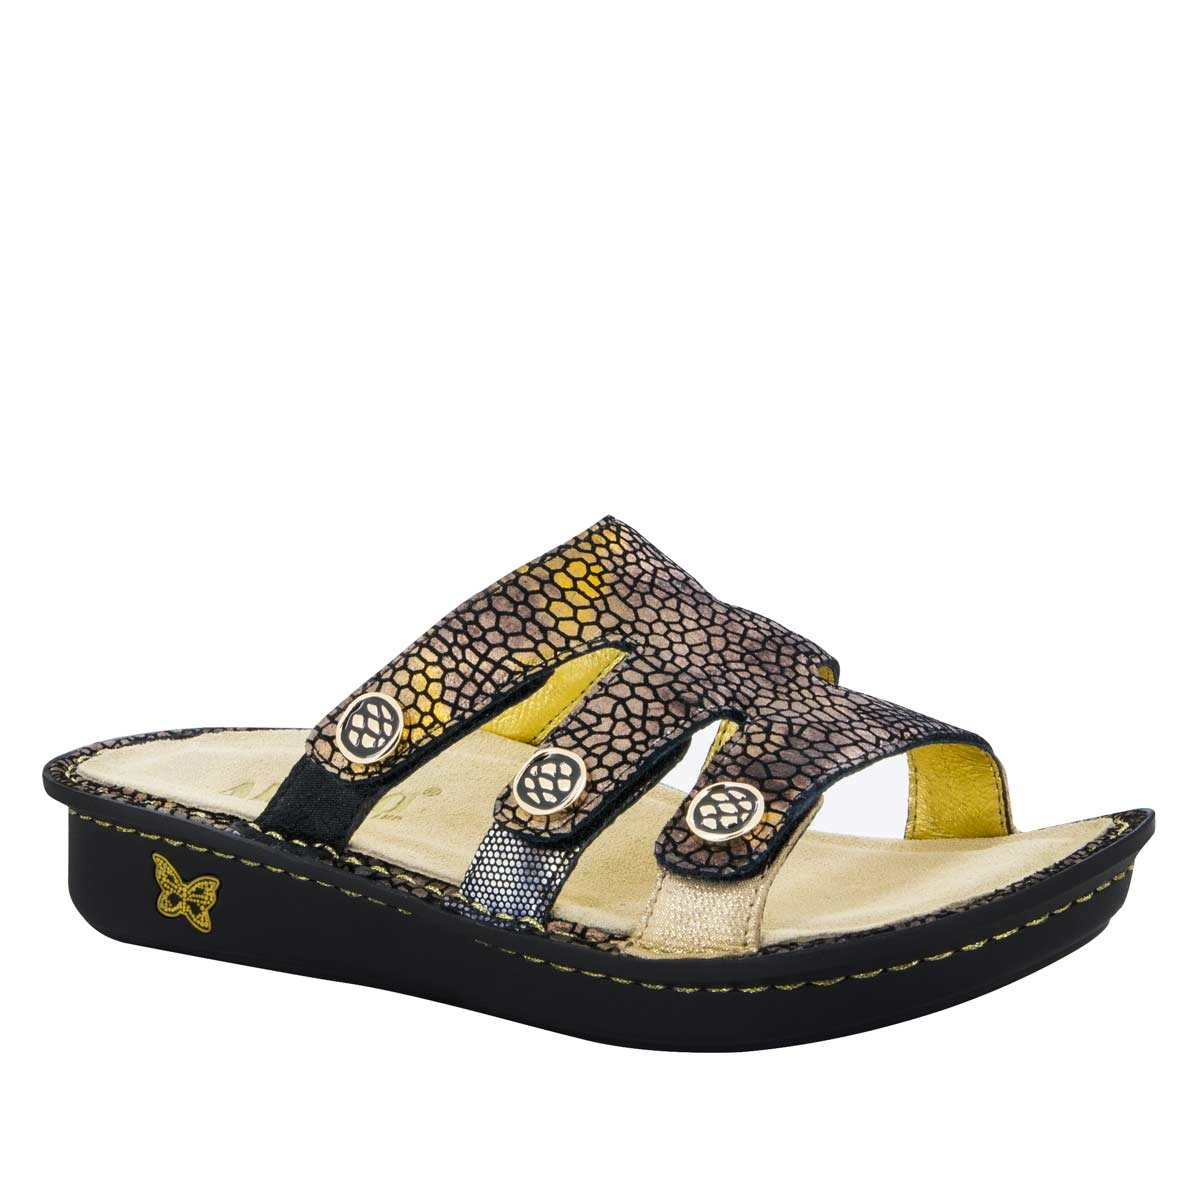 Alegria Venice Adjustable Sandals TqWYS41Yv